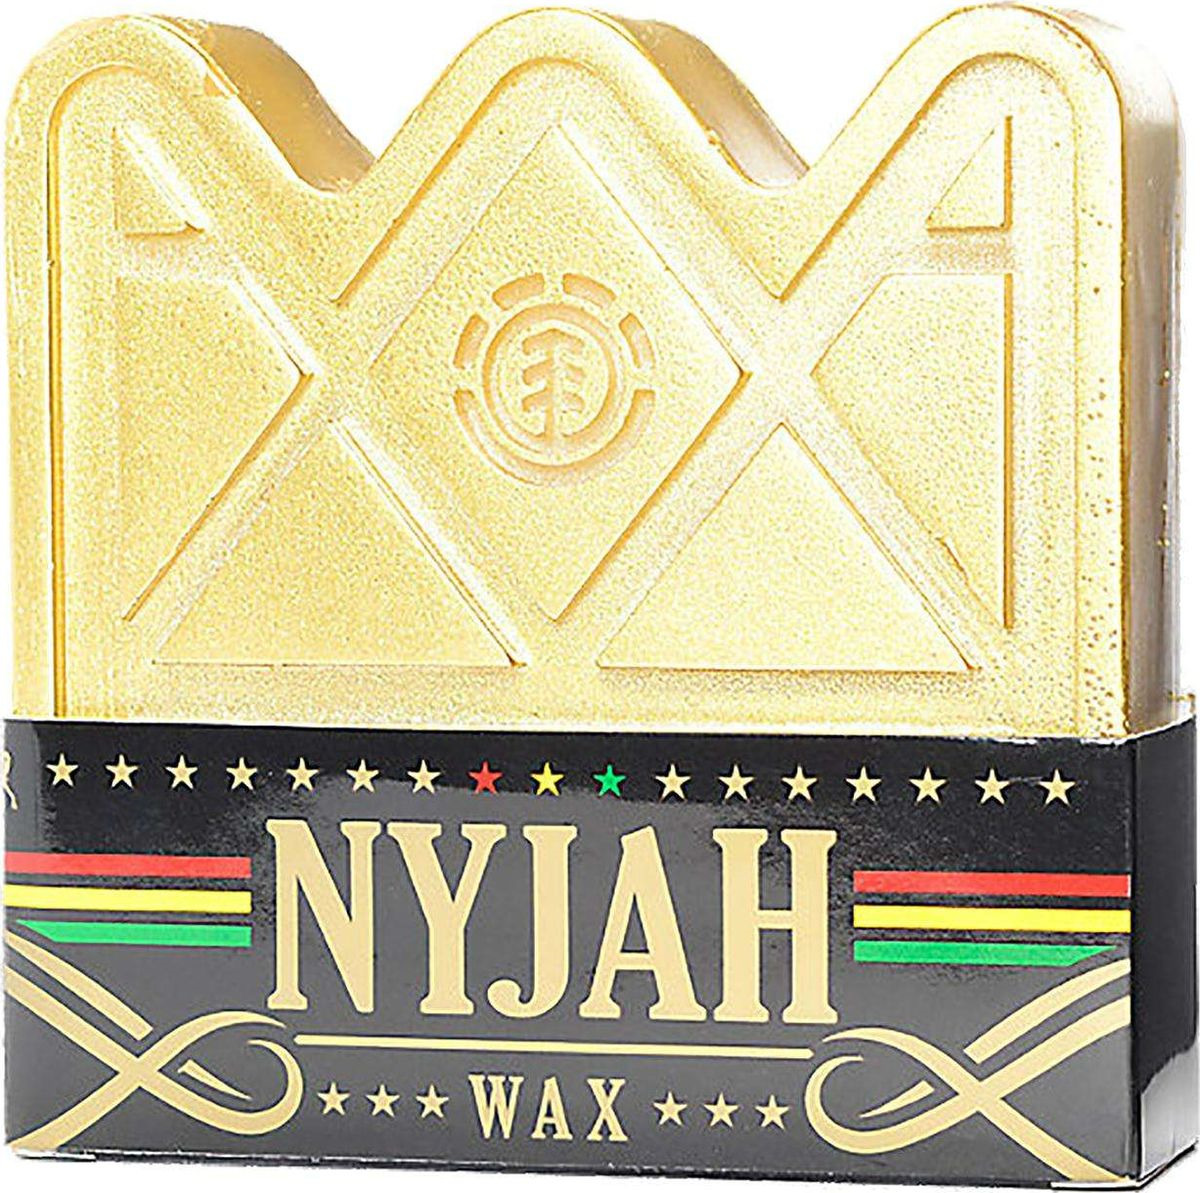 Воск для скейтборда Element Nyjah Crown Wax, 04AHB9-ELPP-1 дека для скейтборда для скейтборда element jungle script multi 31 75 x 8 2 20 8 см